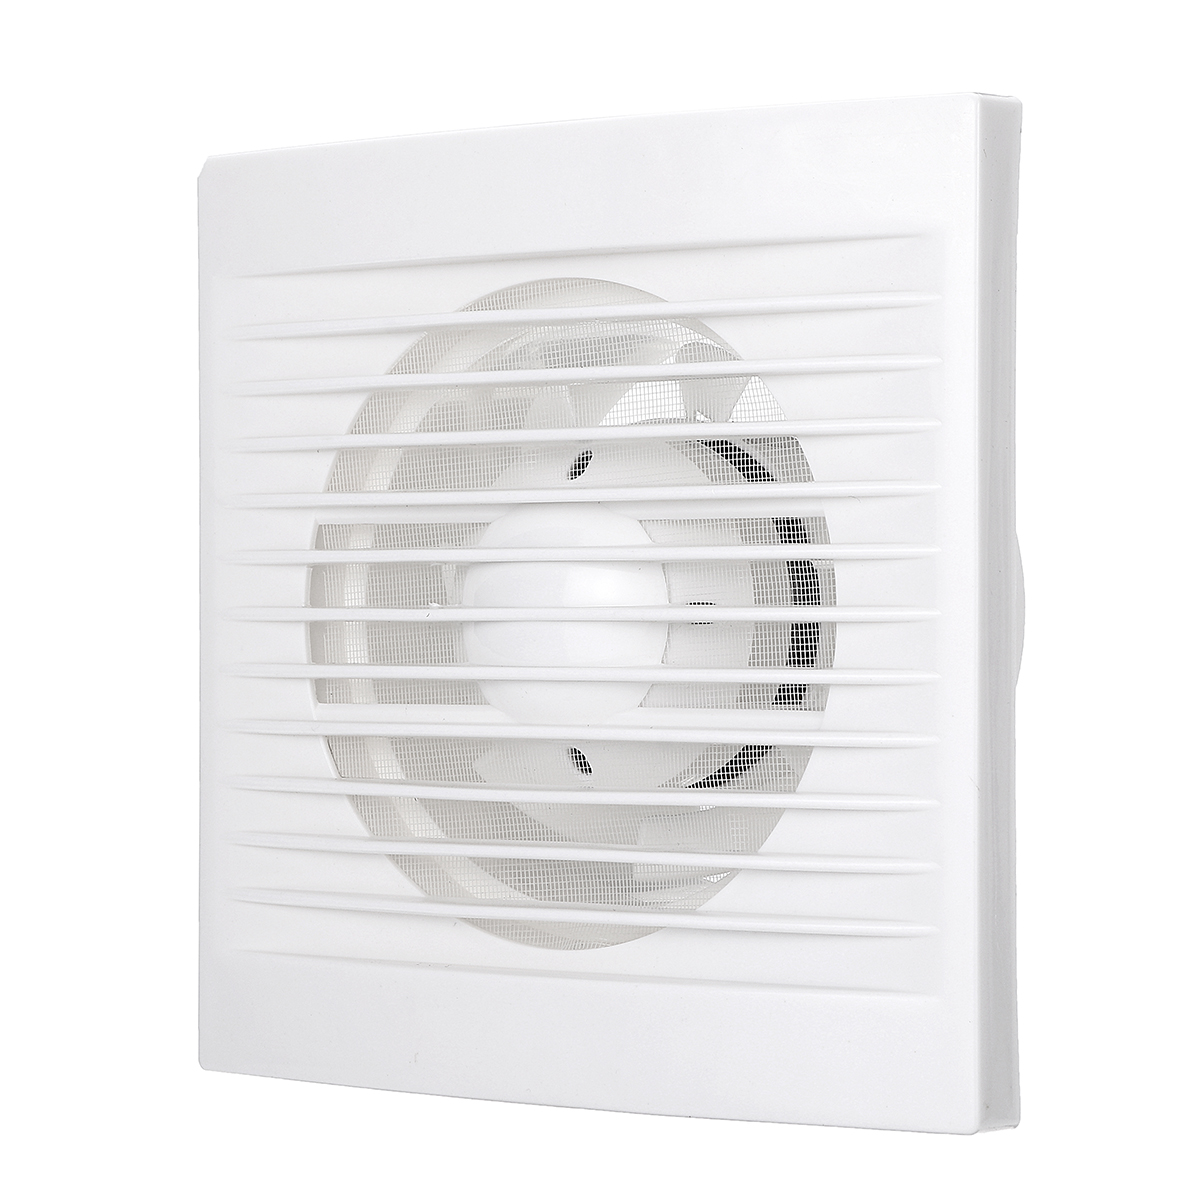 220V 12W 4 Inch Exhaust Fan For Bathroom Kitchen Toilets Home Ventilation Fans Low Noise Air